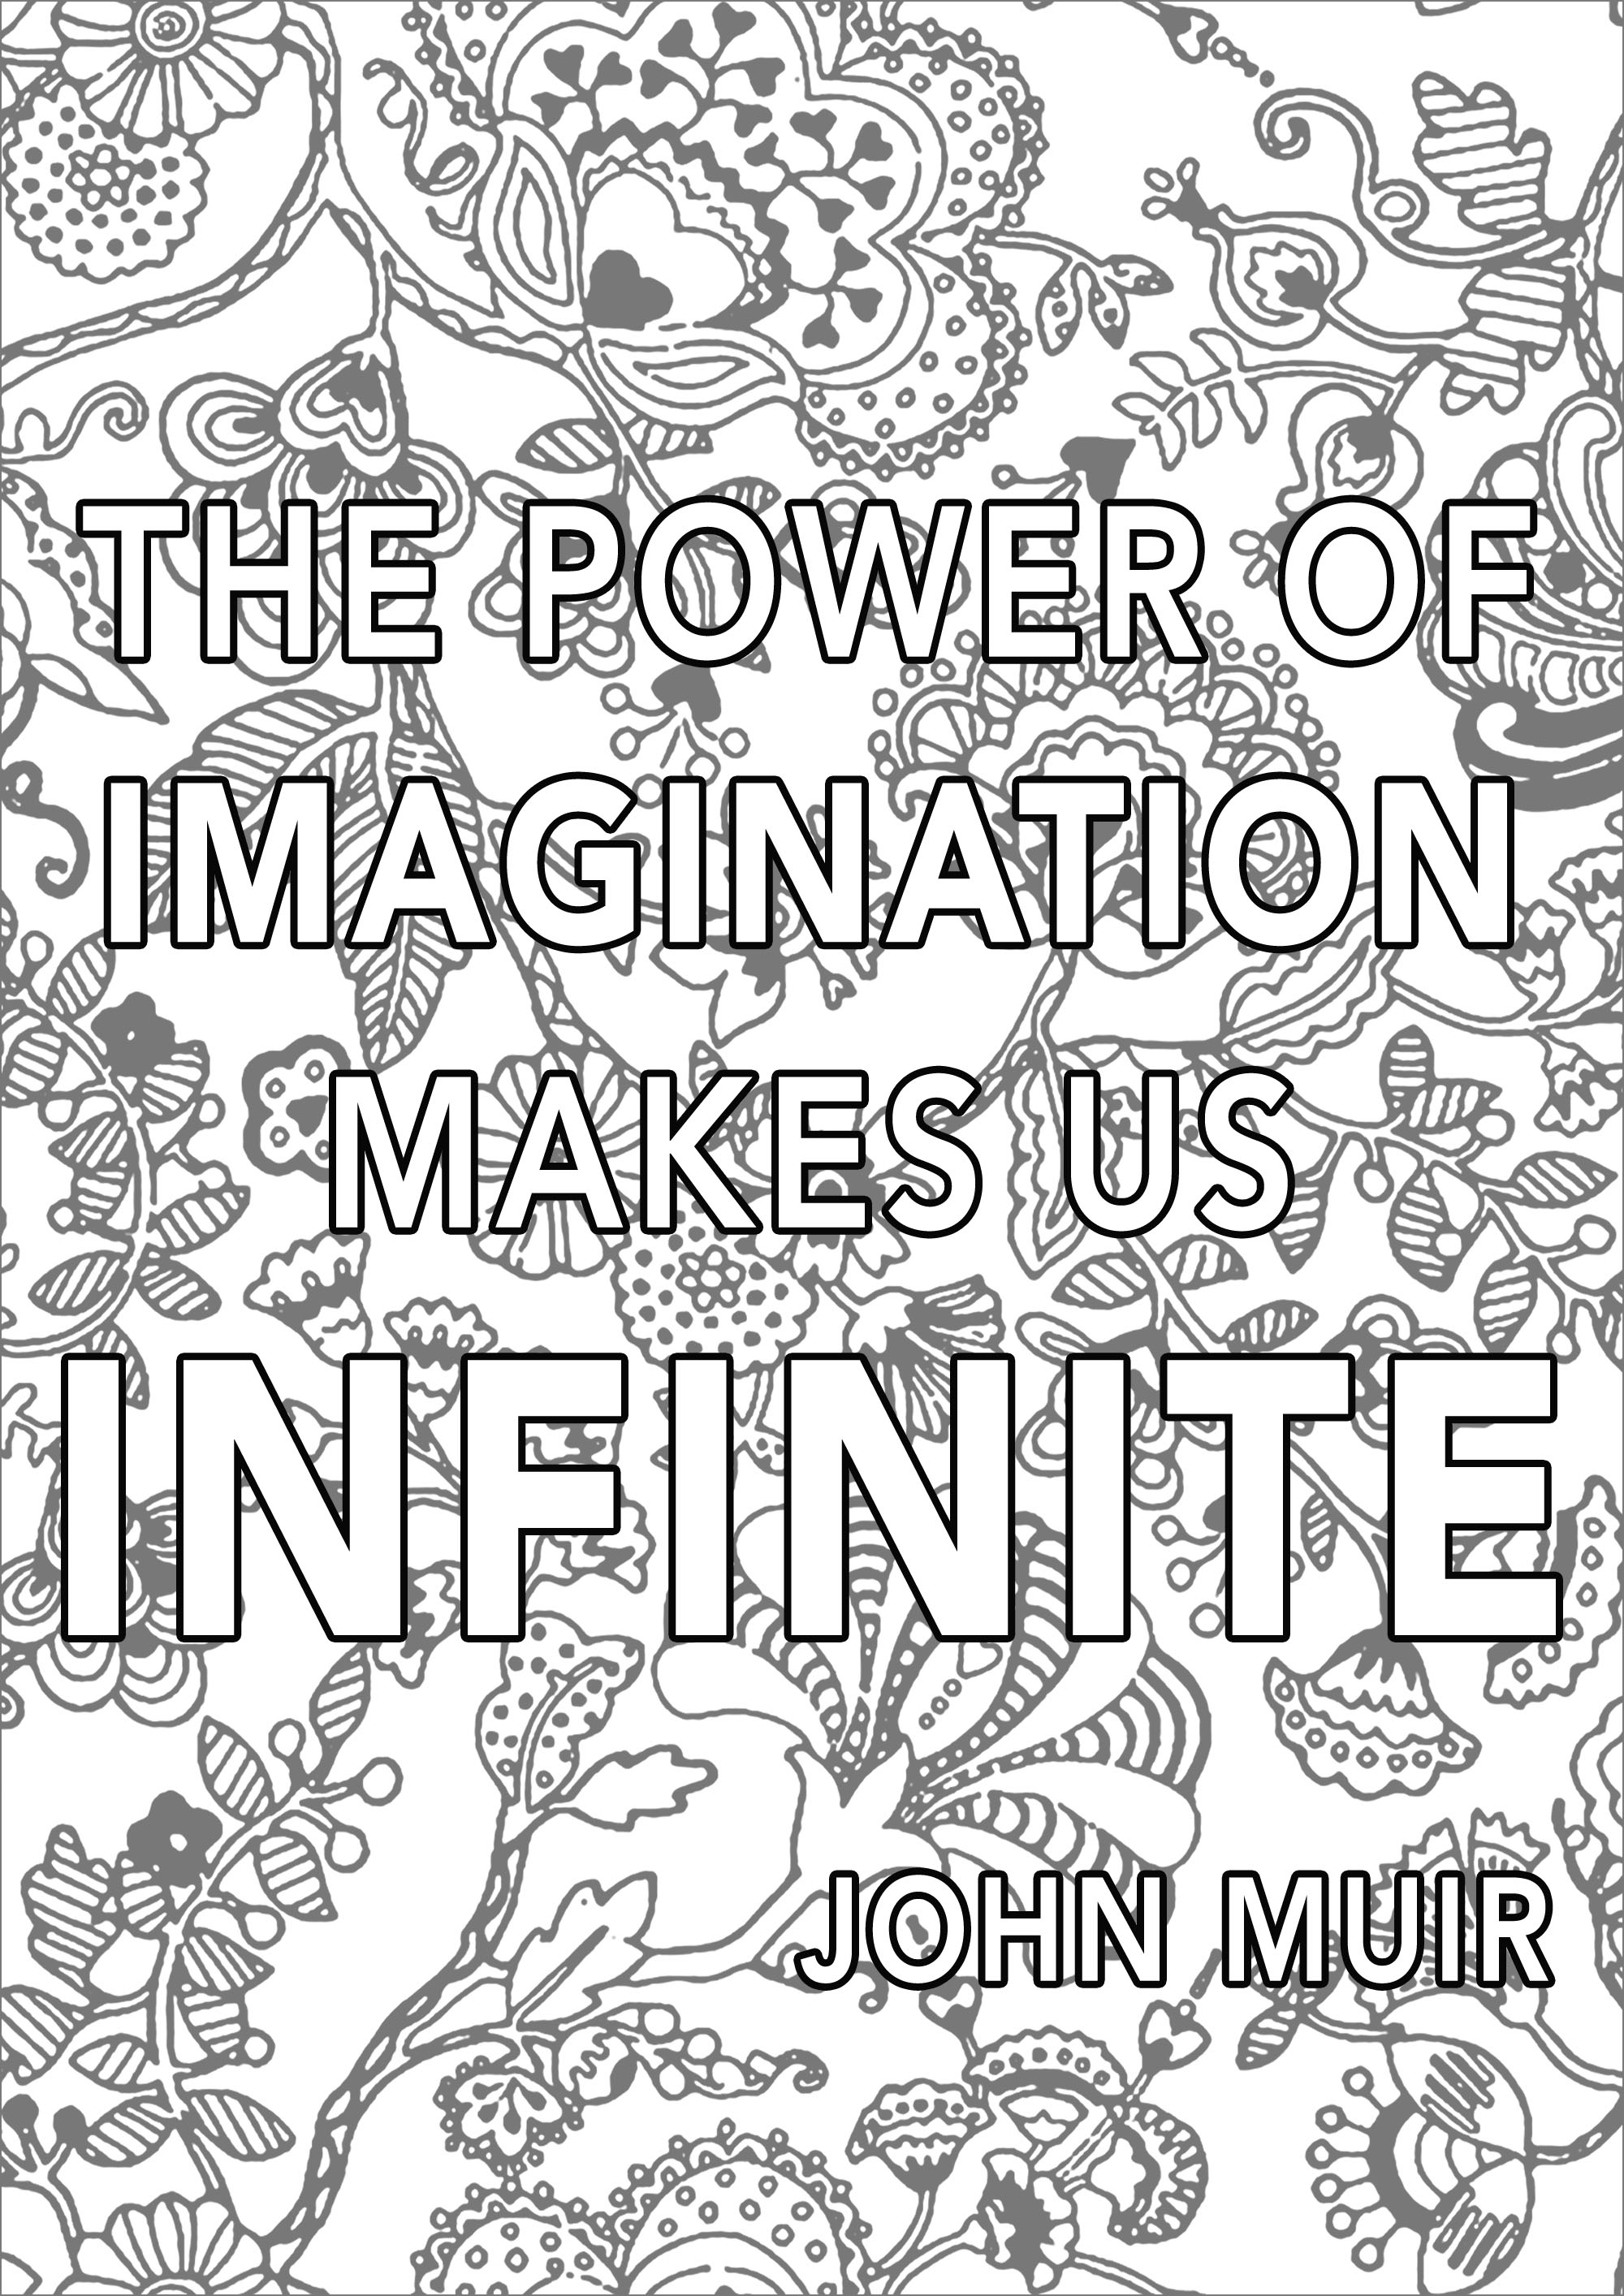 The Power of Imagination makes us Infinite, John Muir